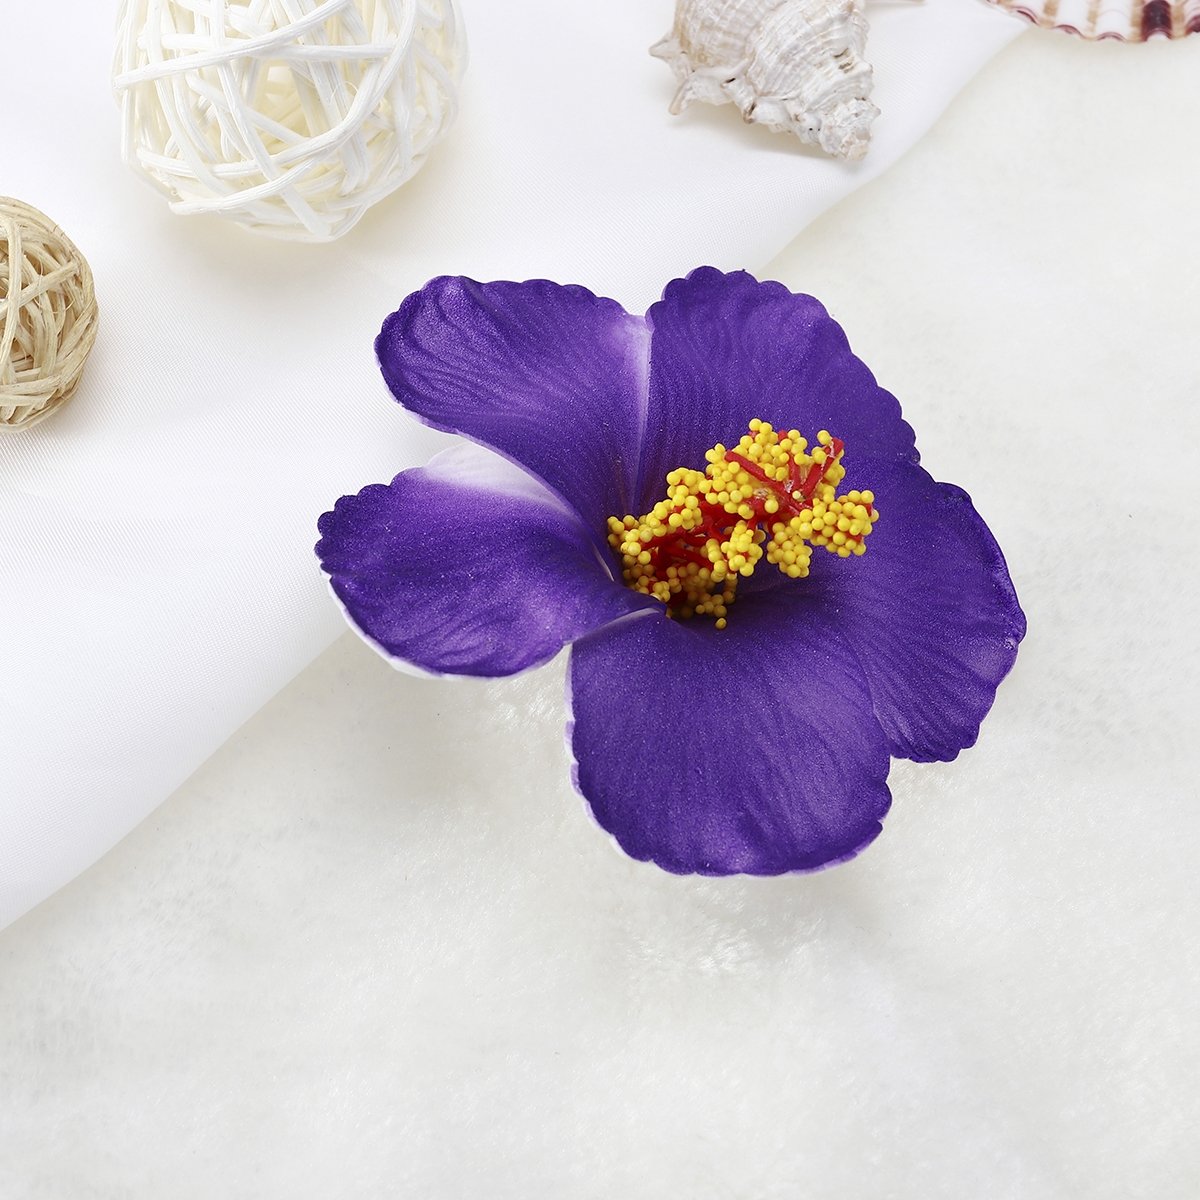 Aliexpress buy bestoyard hibiscus flowers hawaiian artificial 1 hibiscus flowers hawaiian flowers artificial flowers for tabletop decoration party favors supplies purple izmirmasajfo